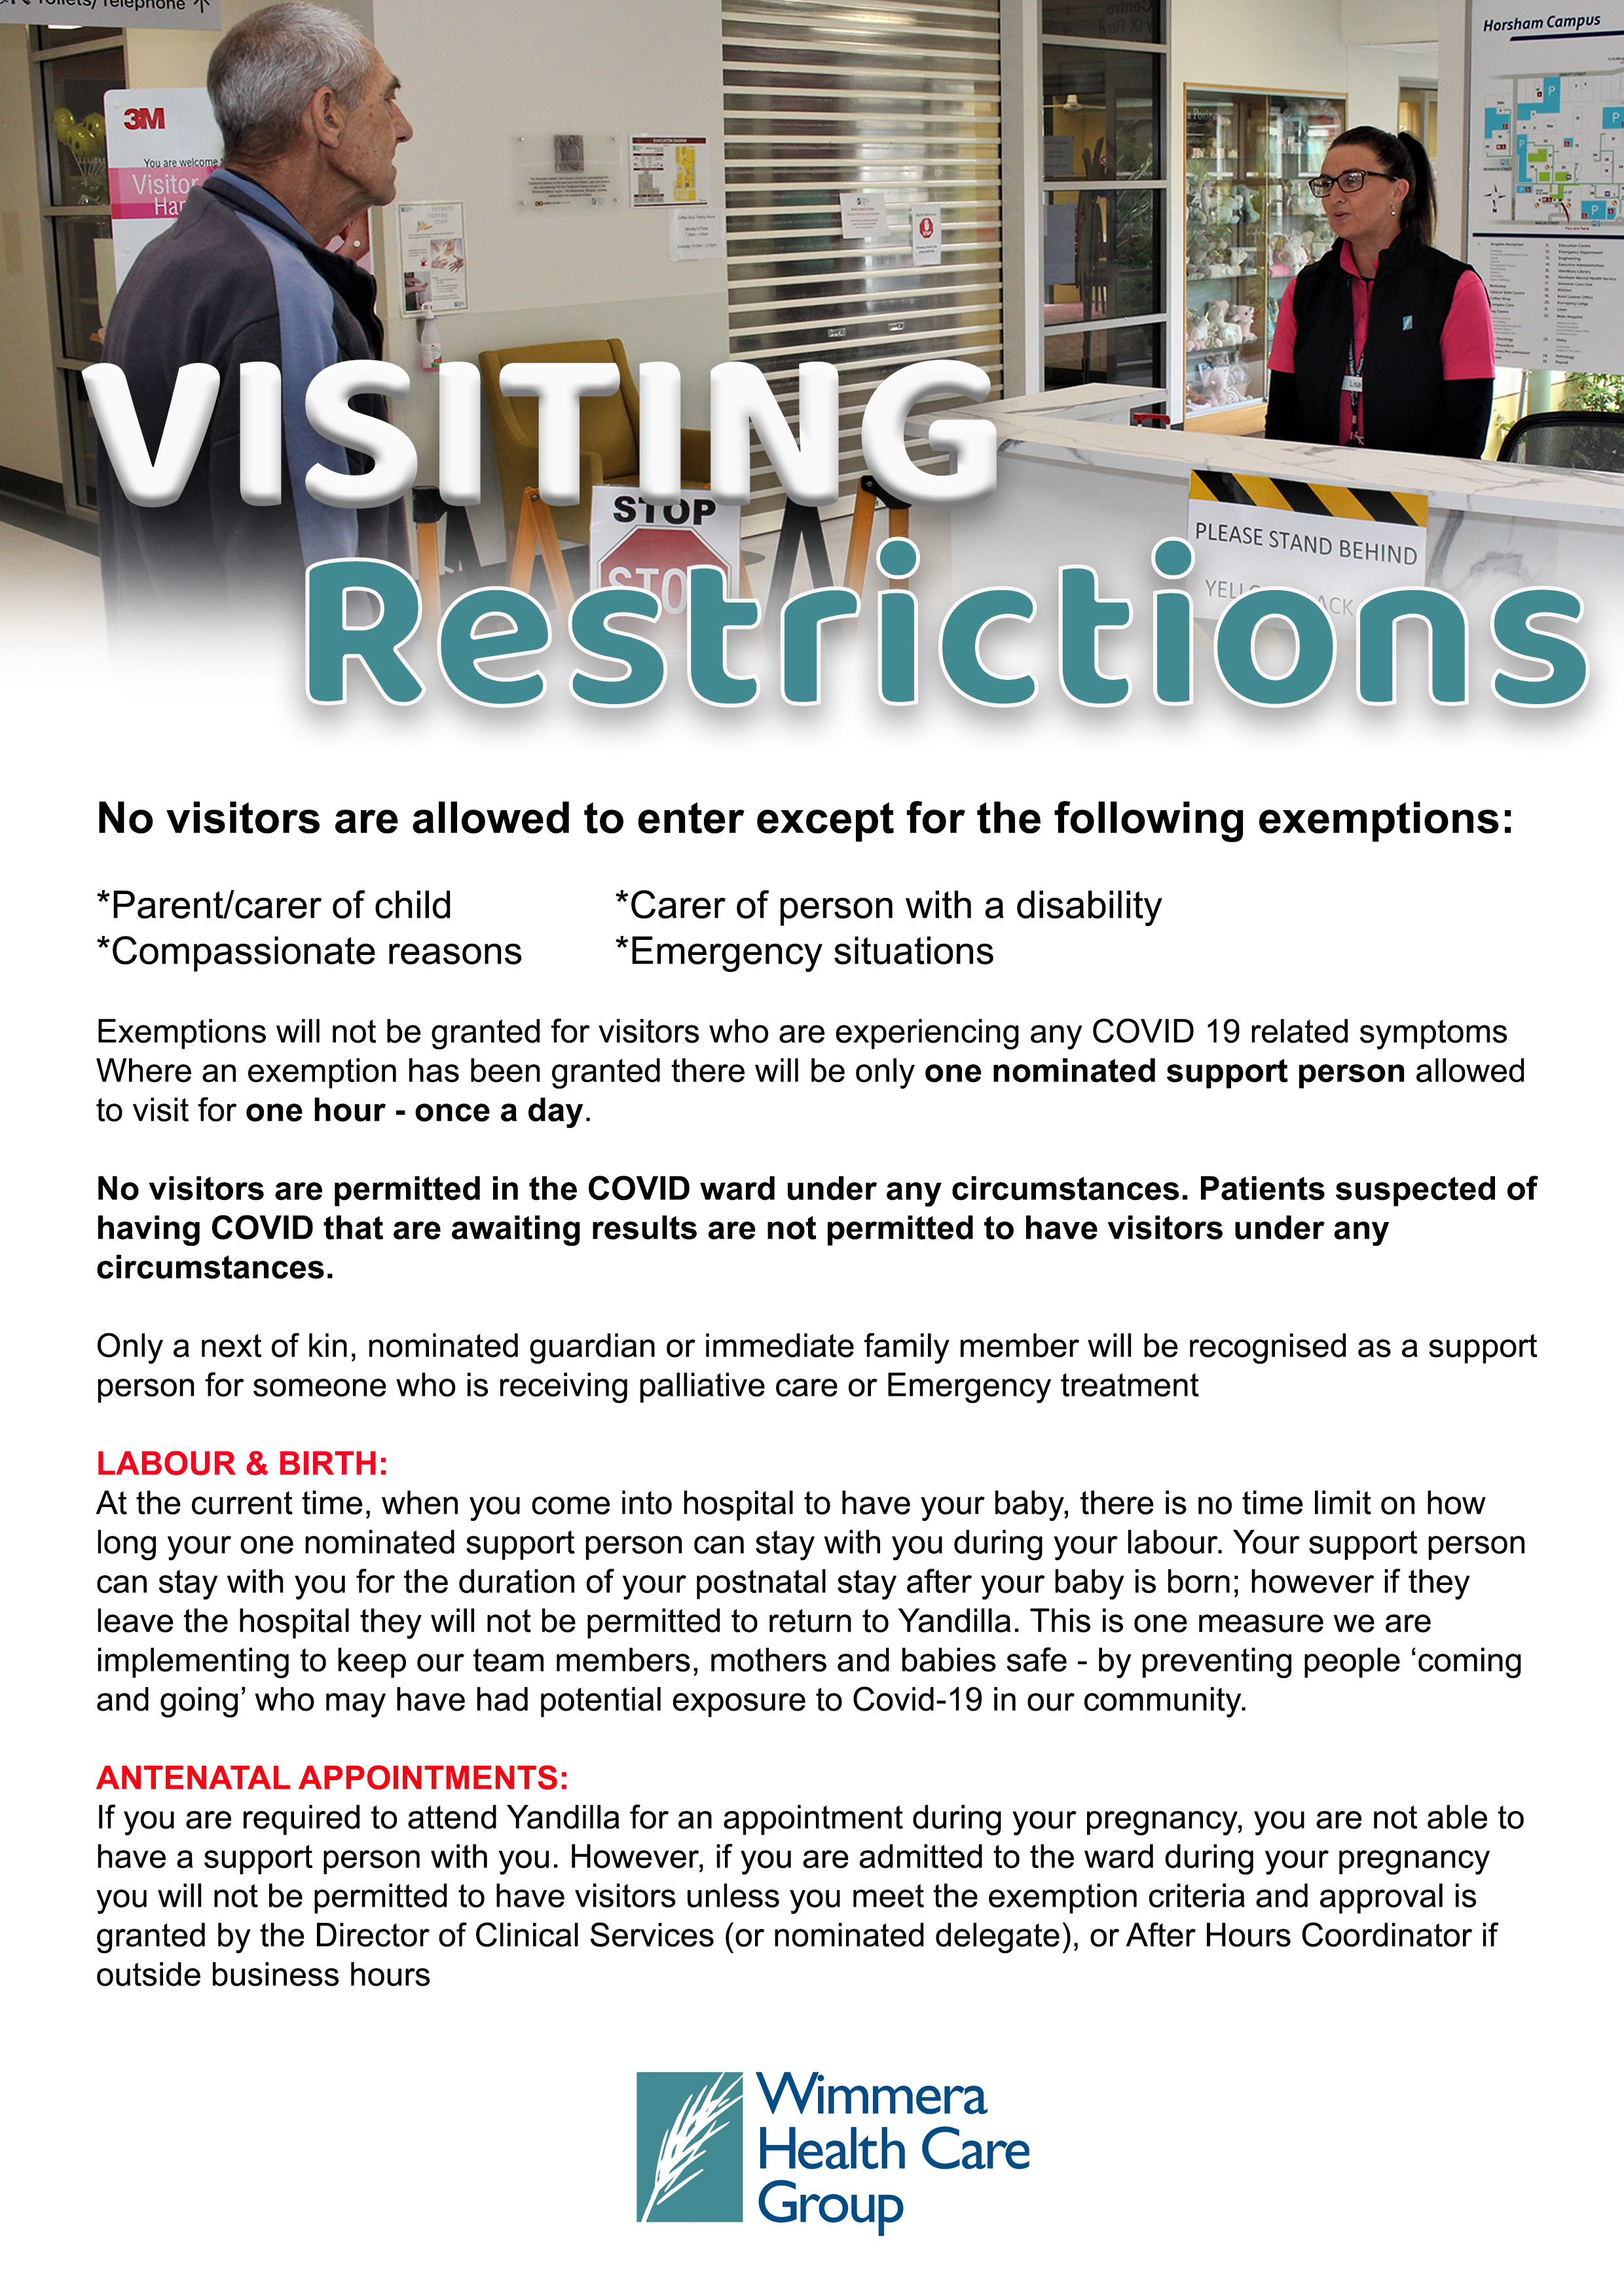 covid visiting restrictions 27 07 20